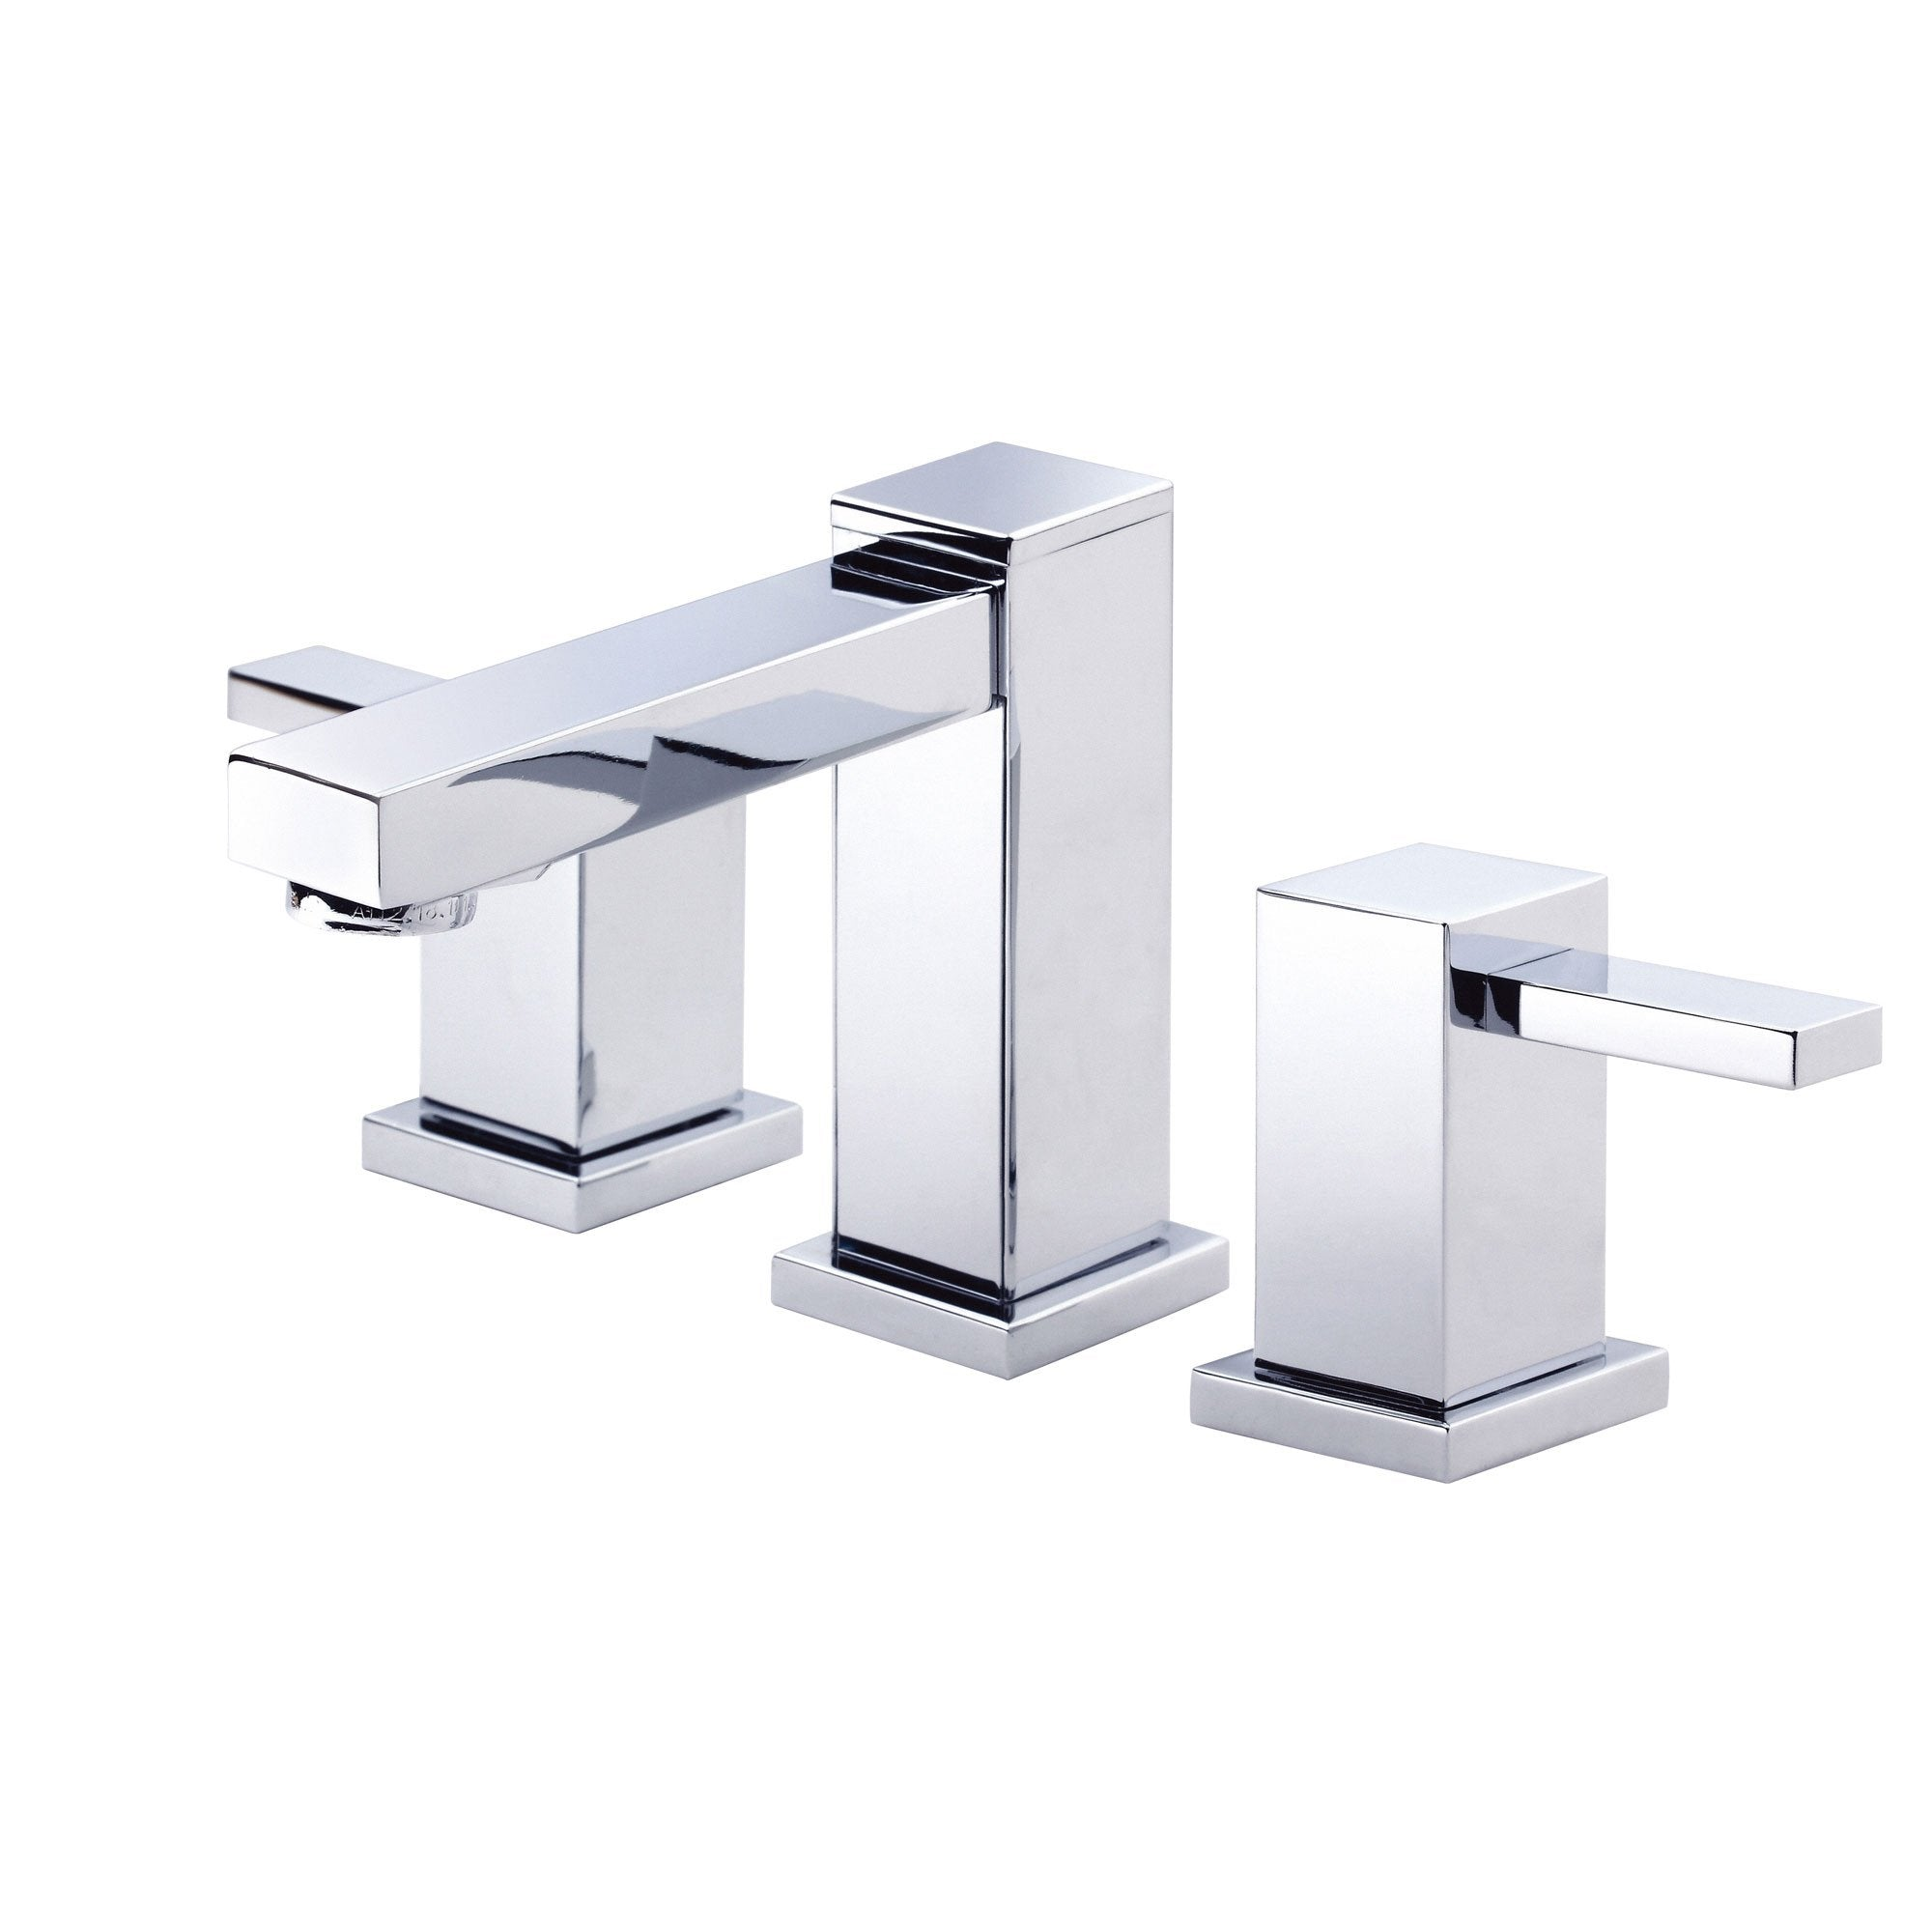 Danze Reef Chrome Modern Square 2 Handle Widespread Bathroom Sink Faucet